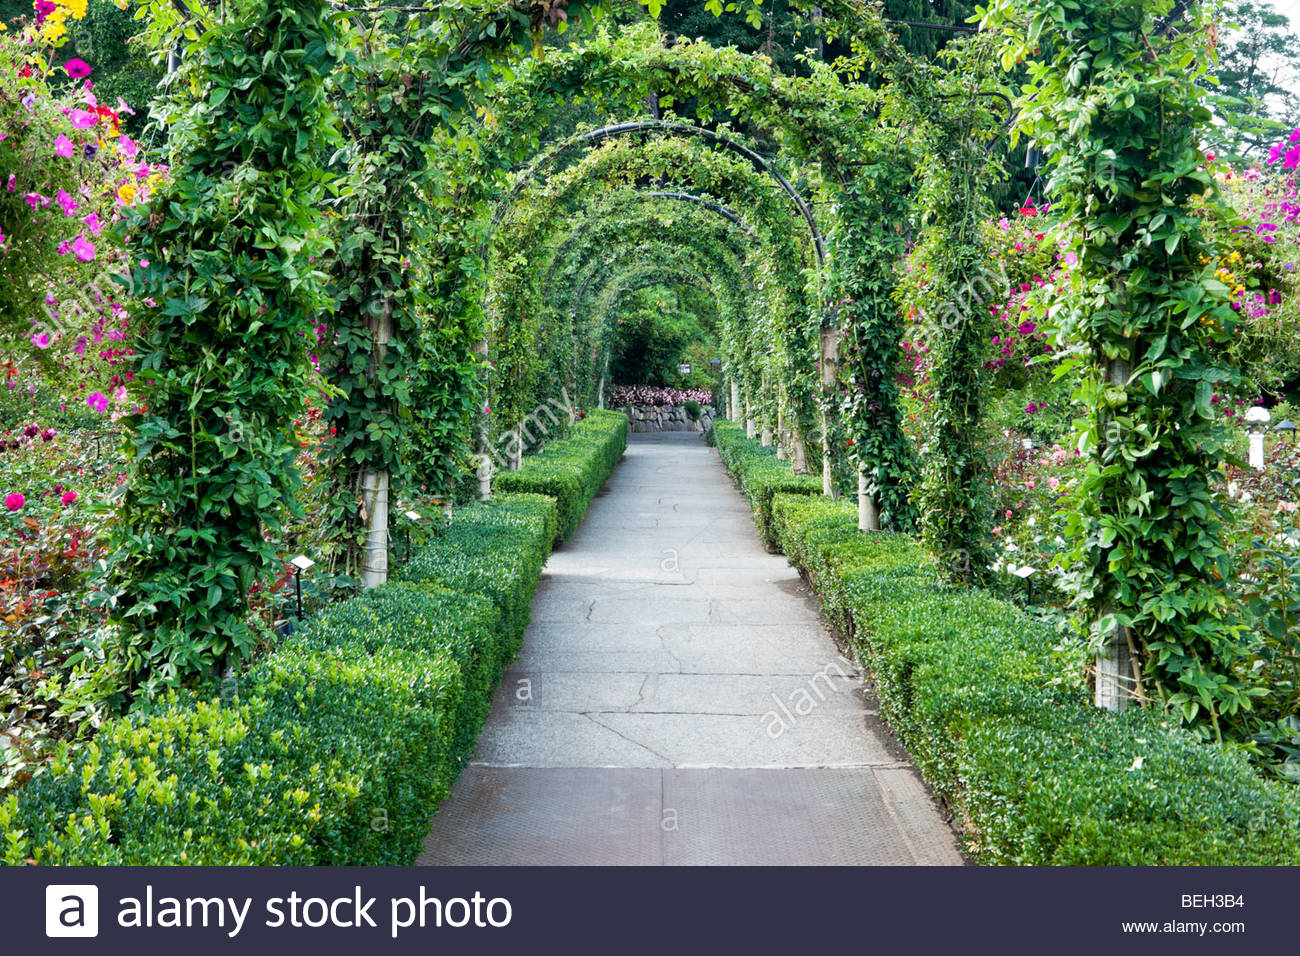 Rose Garden Pathway At The Butchart Gardens, Brentwood Bay, B.C